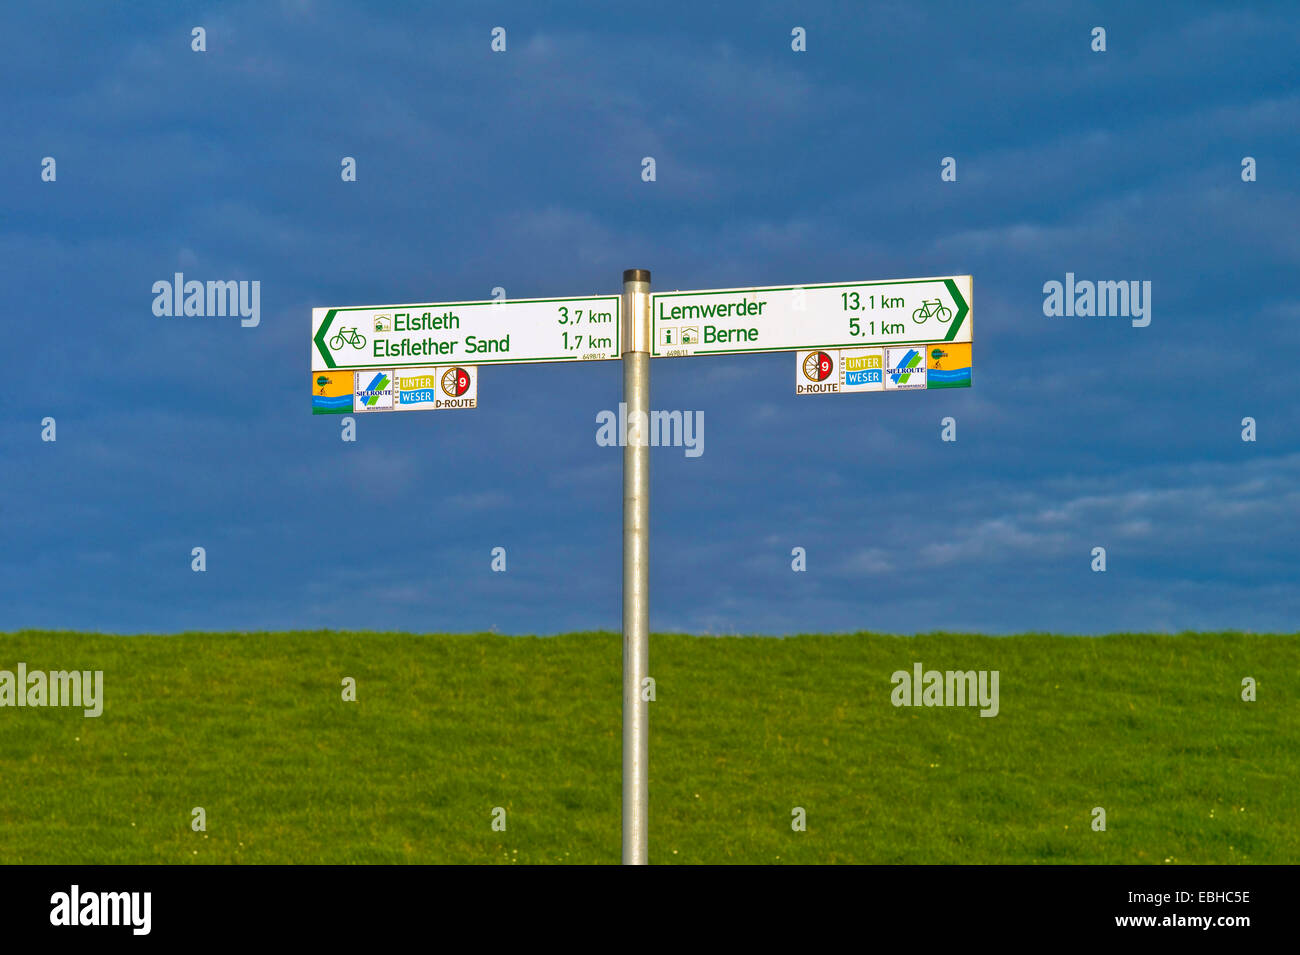 direction signs for bicyclists in Orth county Wesermarsch, Germany, Lower Saxony - Stock Image